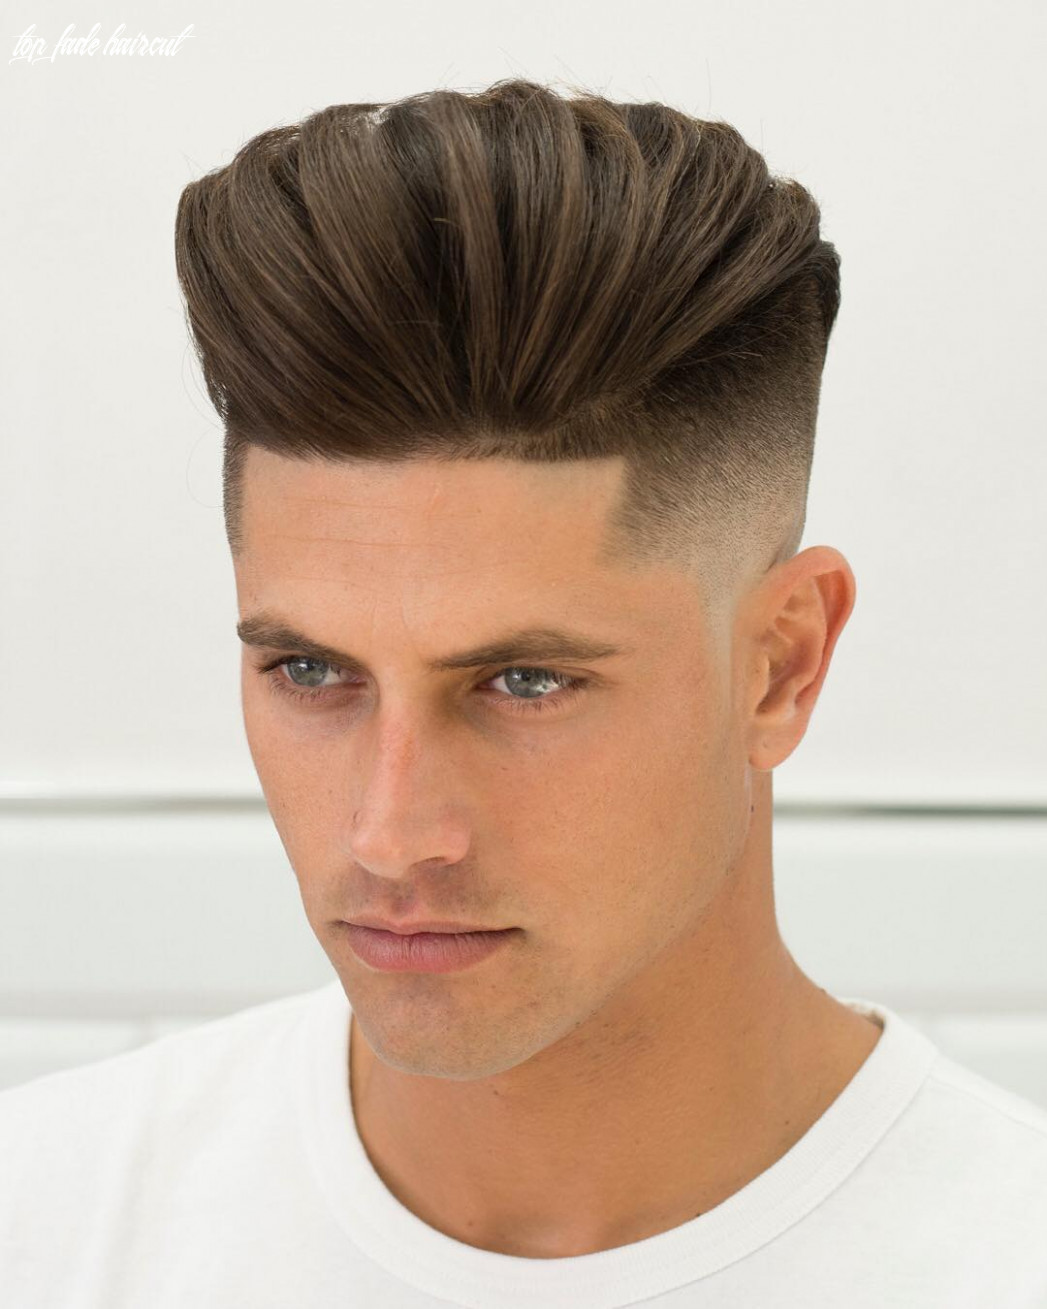 Top 10 fade haircuts for men (10 styles) top fade haircut